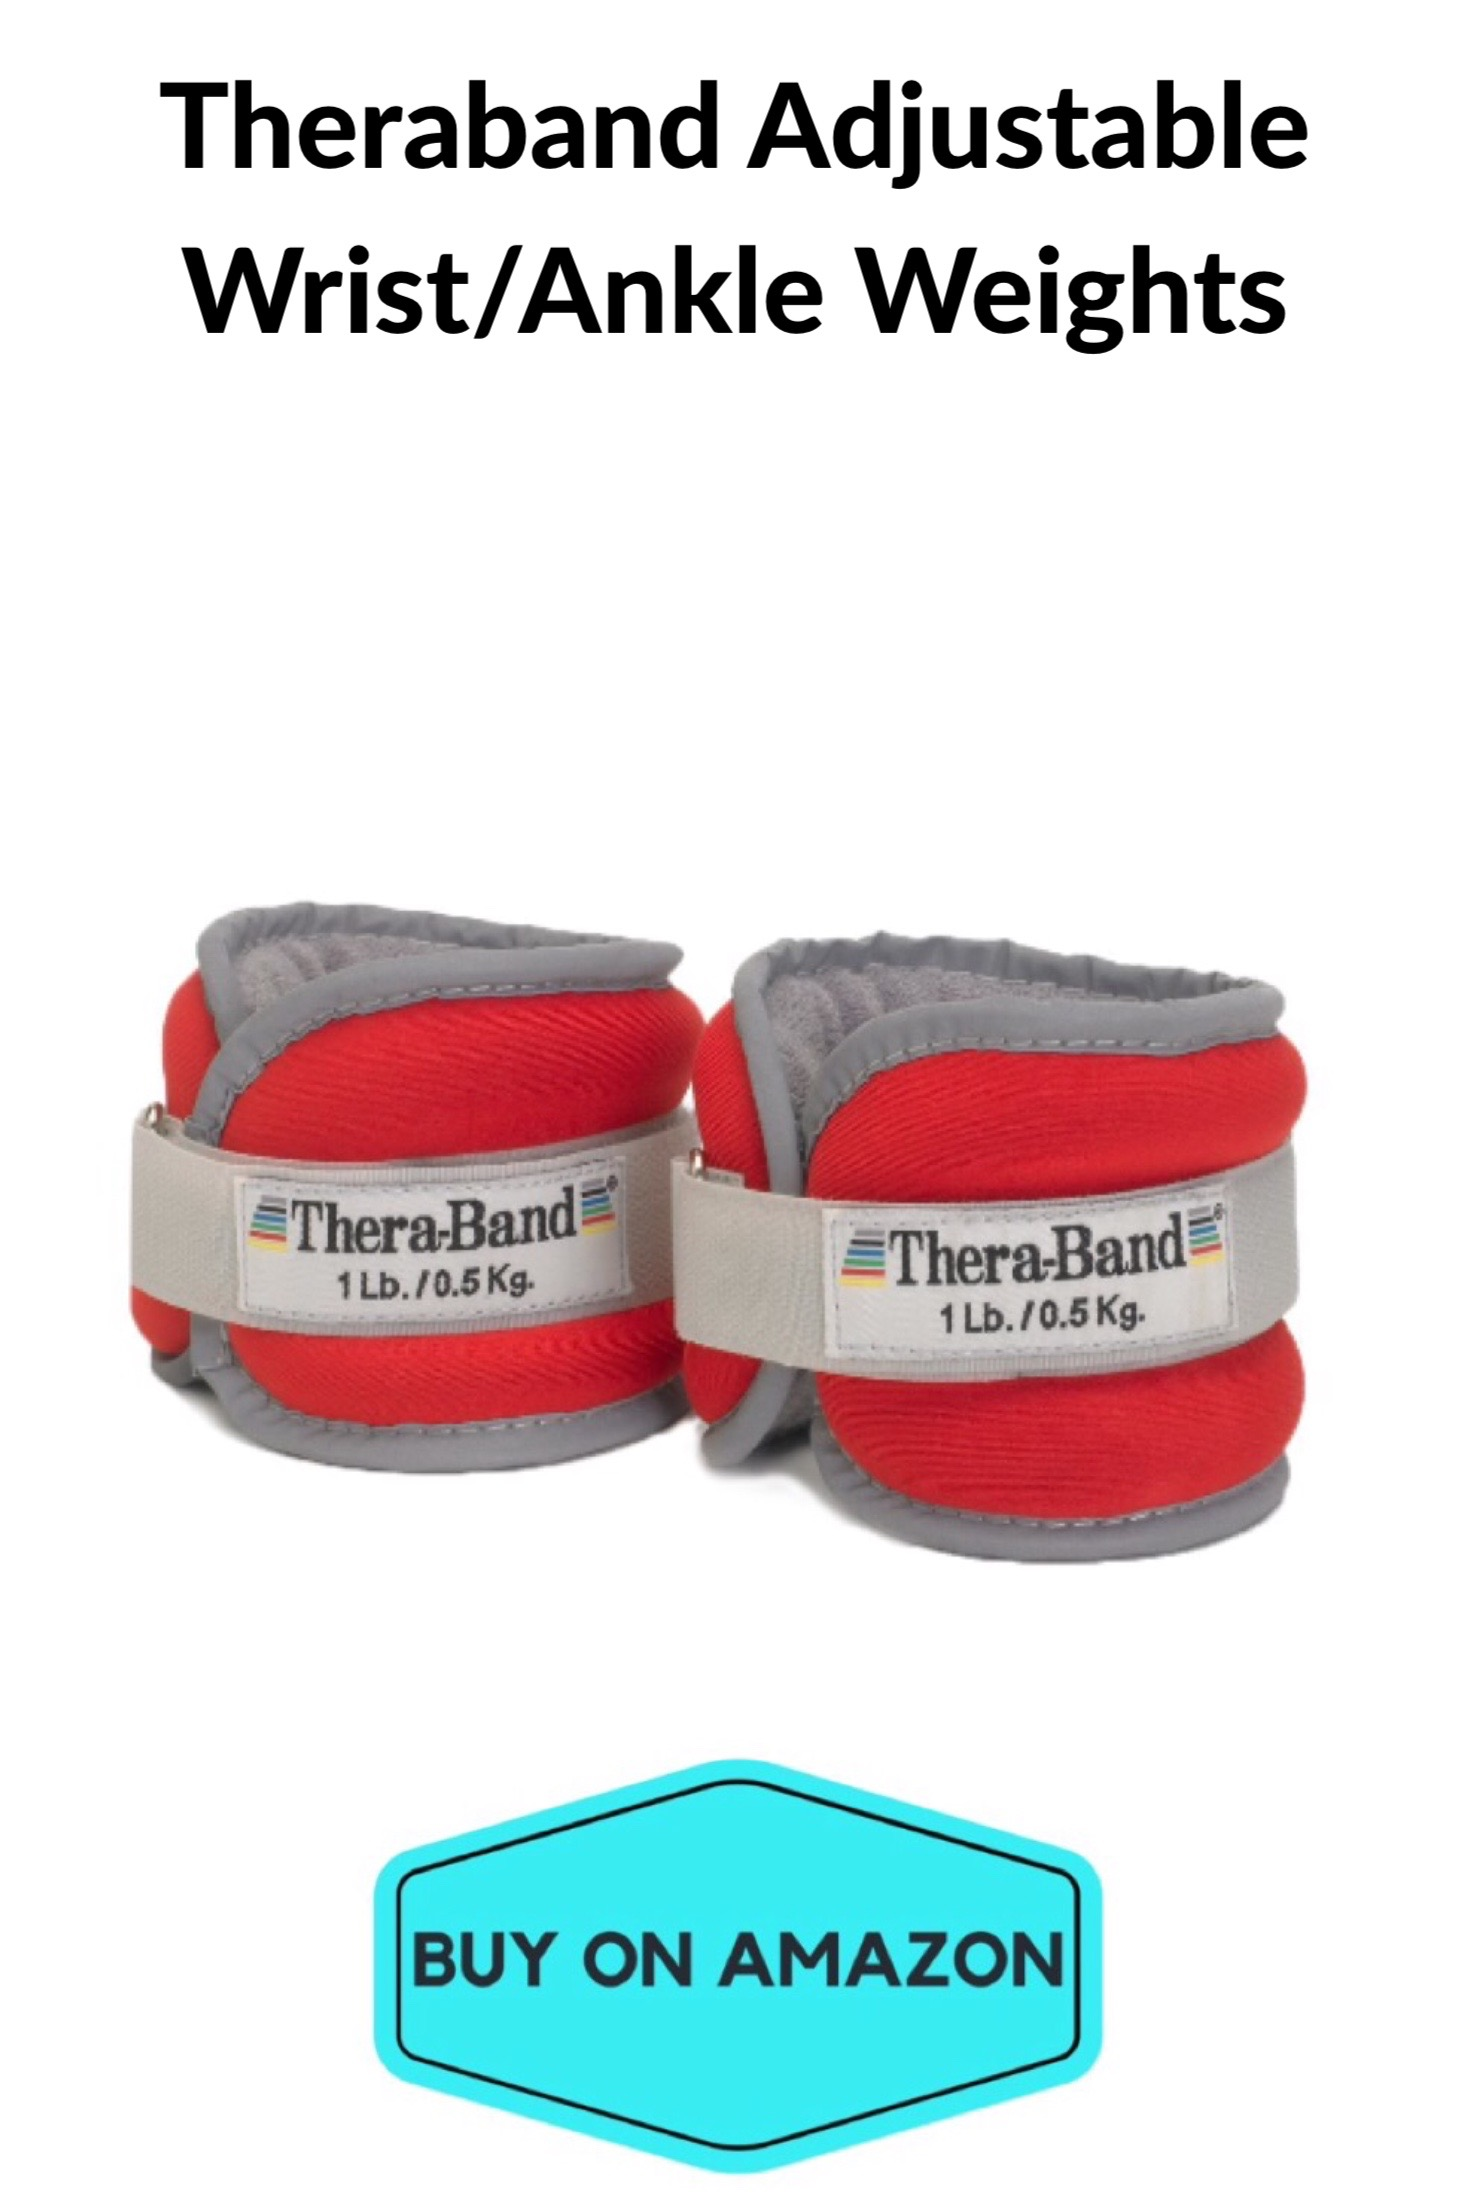 Theraband Adjustable Wrist/Ankle Weights